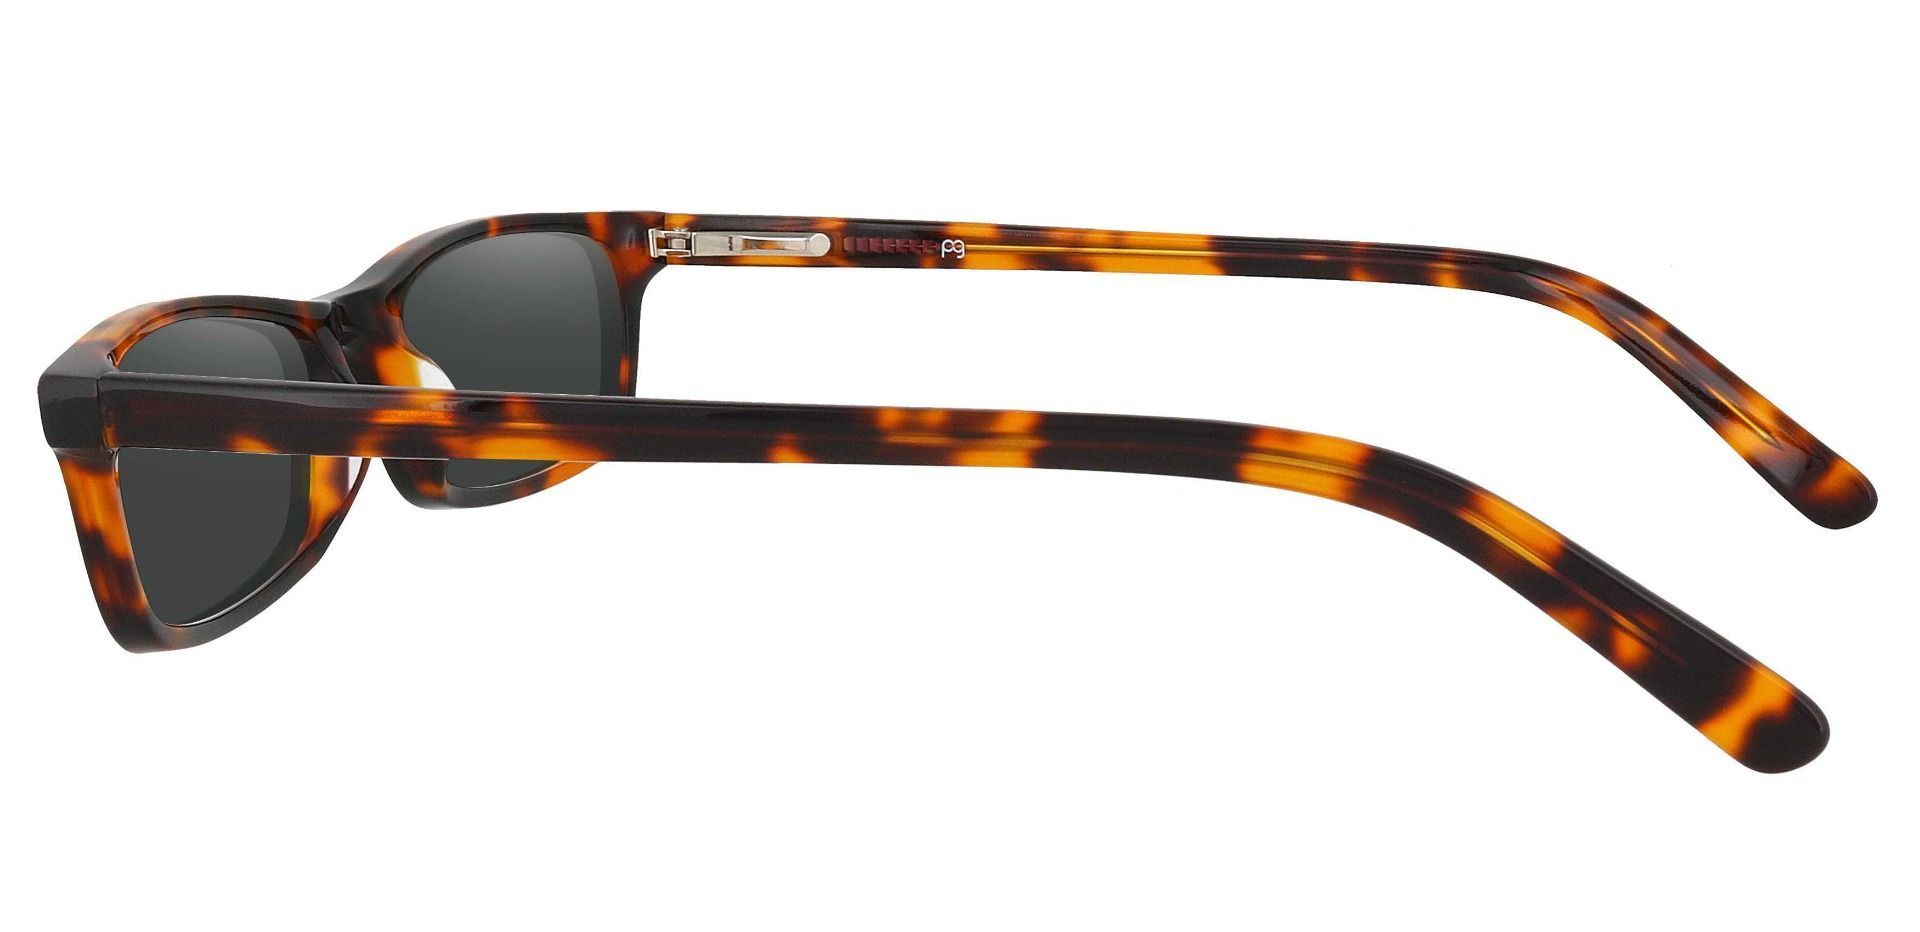 Palisades Rectangle Single Vision Sunglasses - Tortoise Frame With Gray Lenses